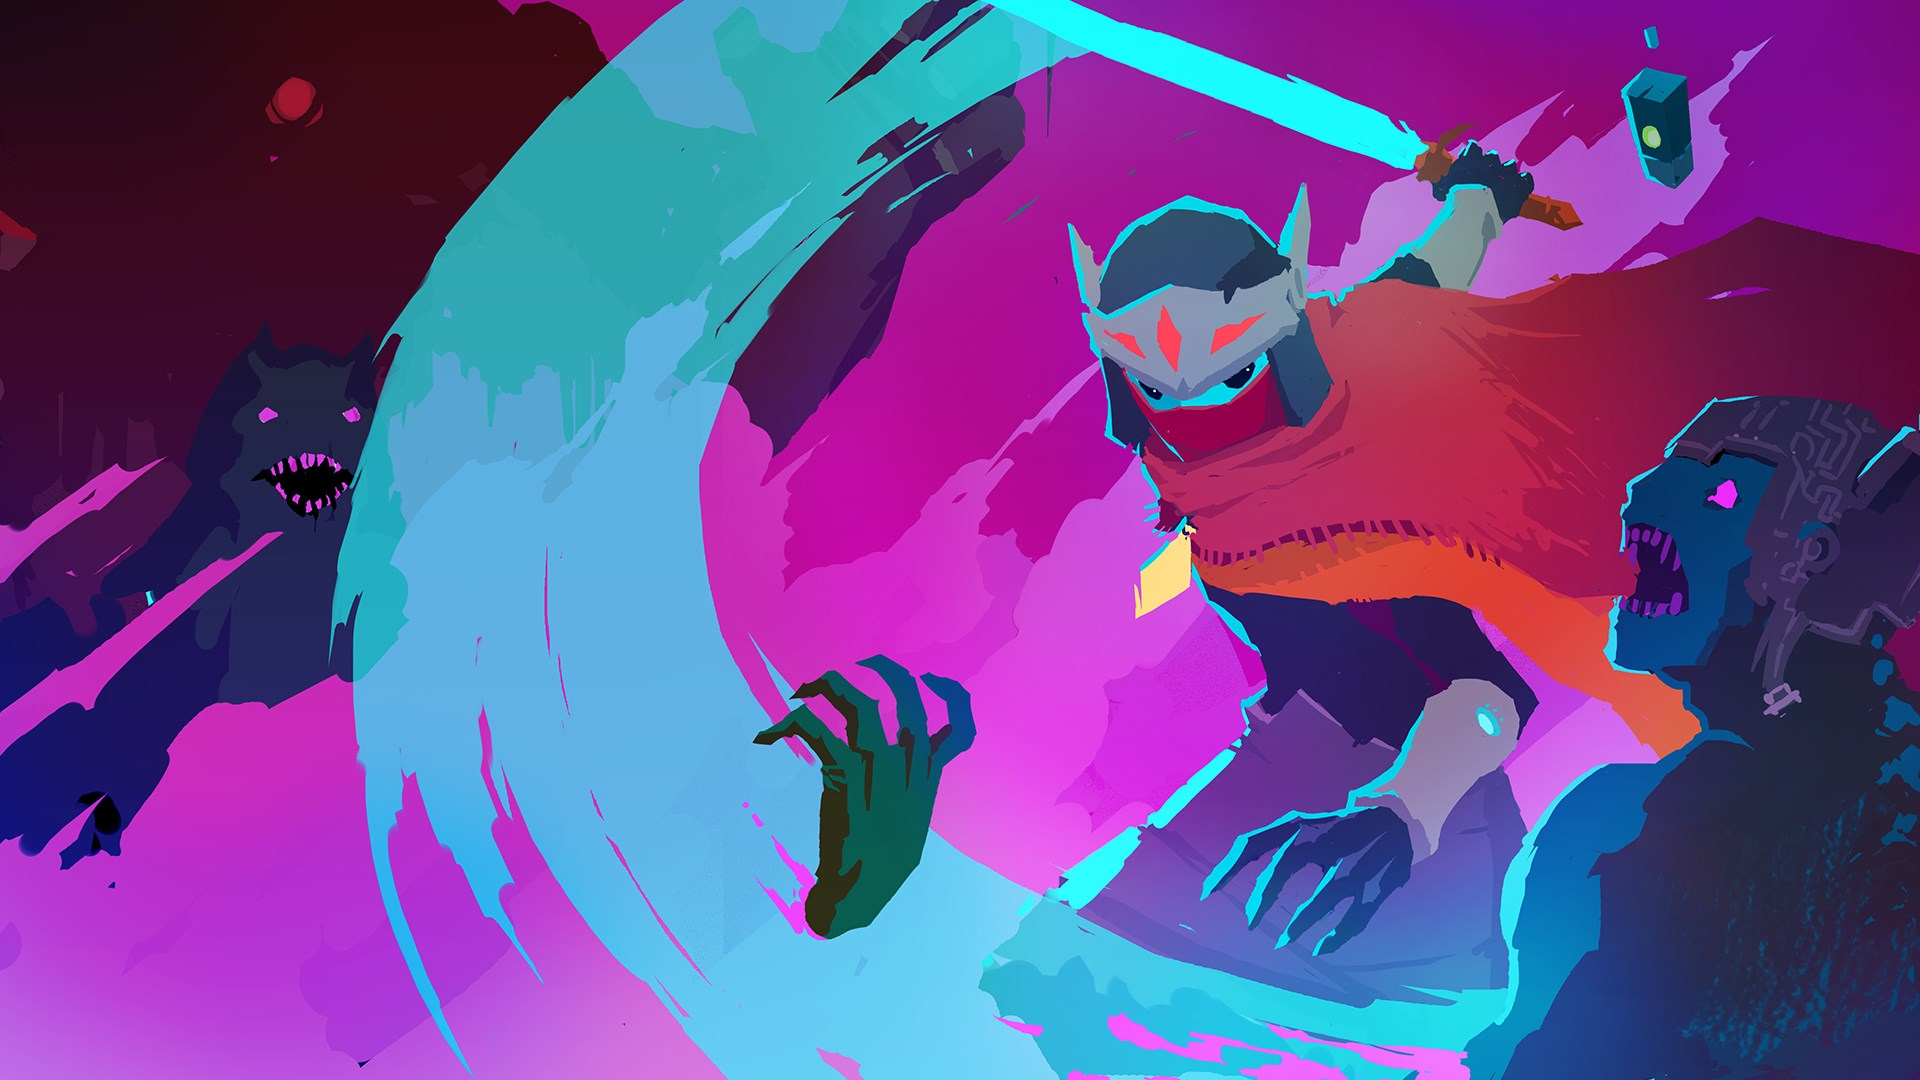 Adi Shankar adds Hyper Light Drifter TV series to his resume, in addition to Castlevania, Devil May Cry, and Assassin's Creed screenshot